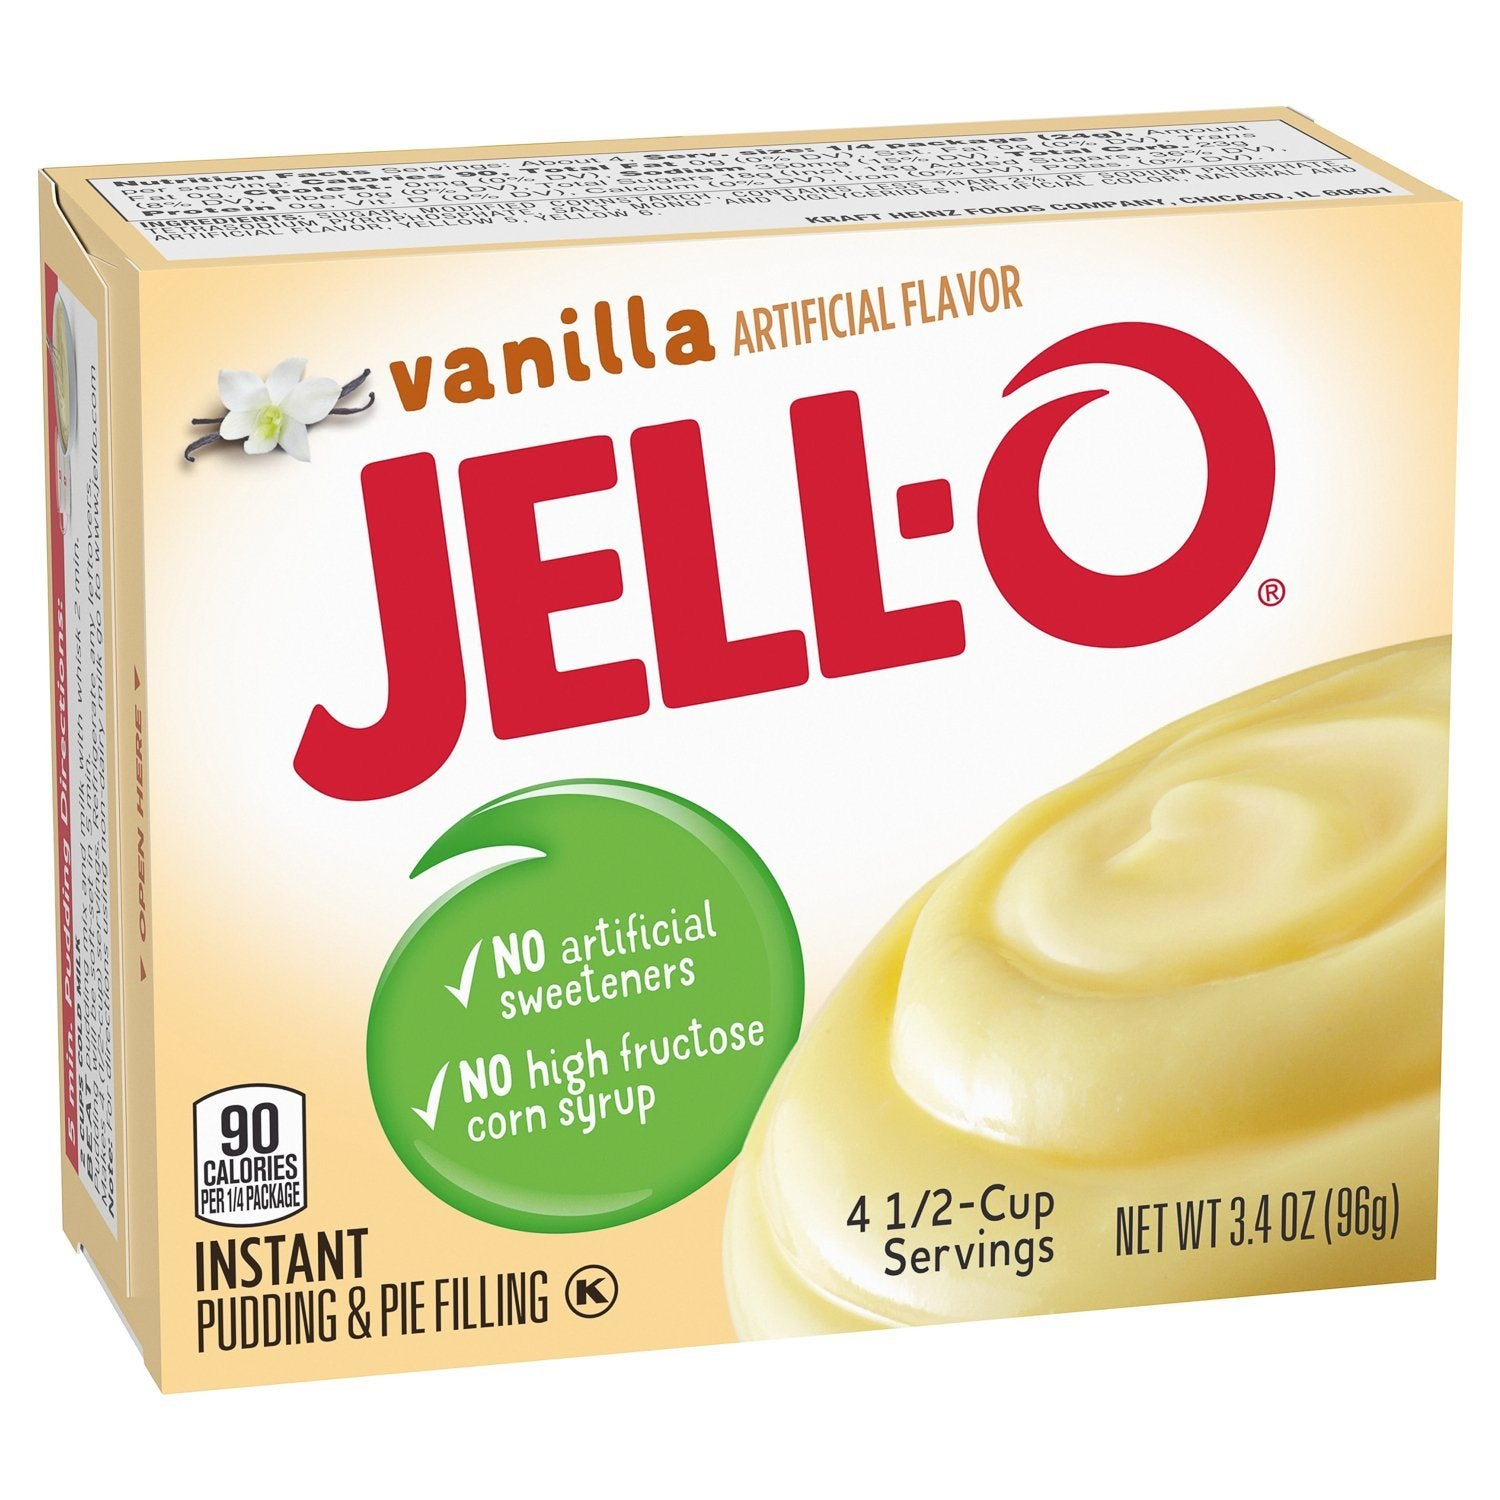 Jell-O Instant Pudding & Pie Filling Mixes Jell-O Vanilla 3.4 Ounce